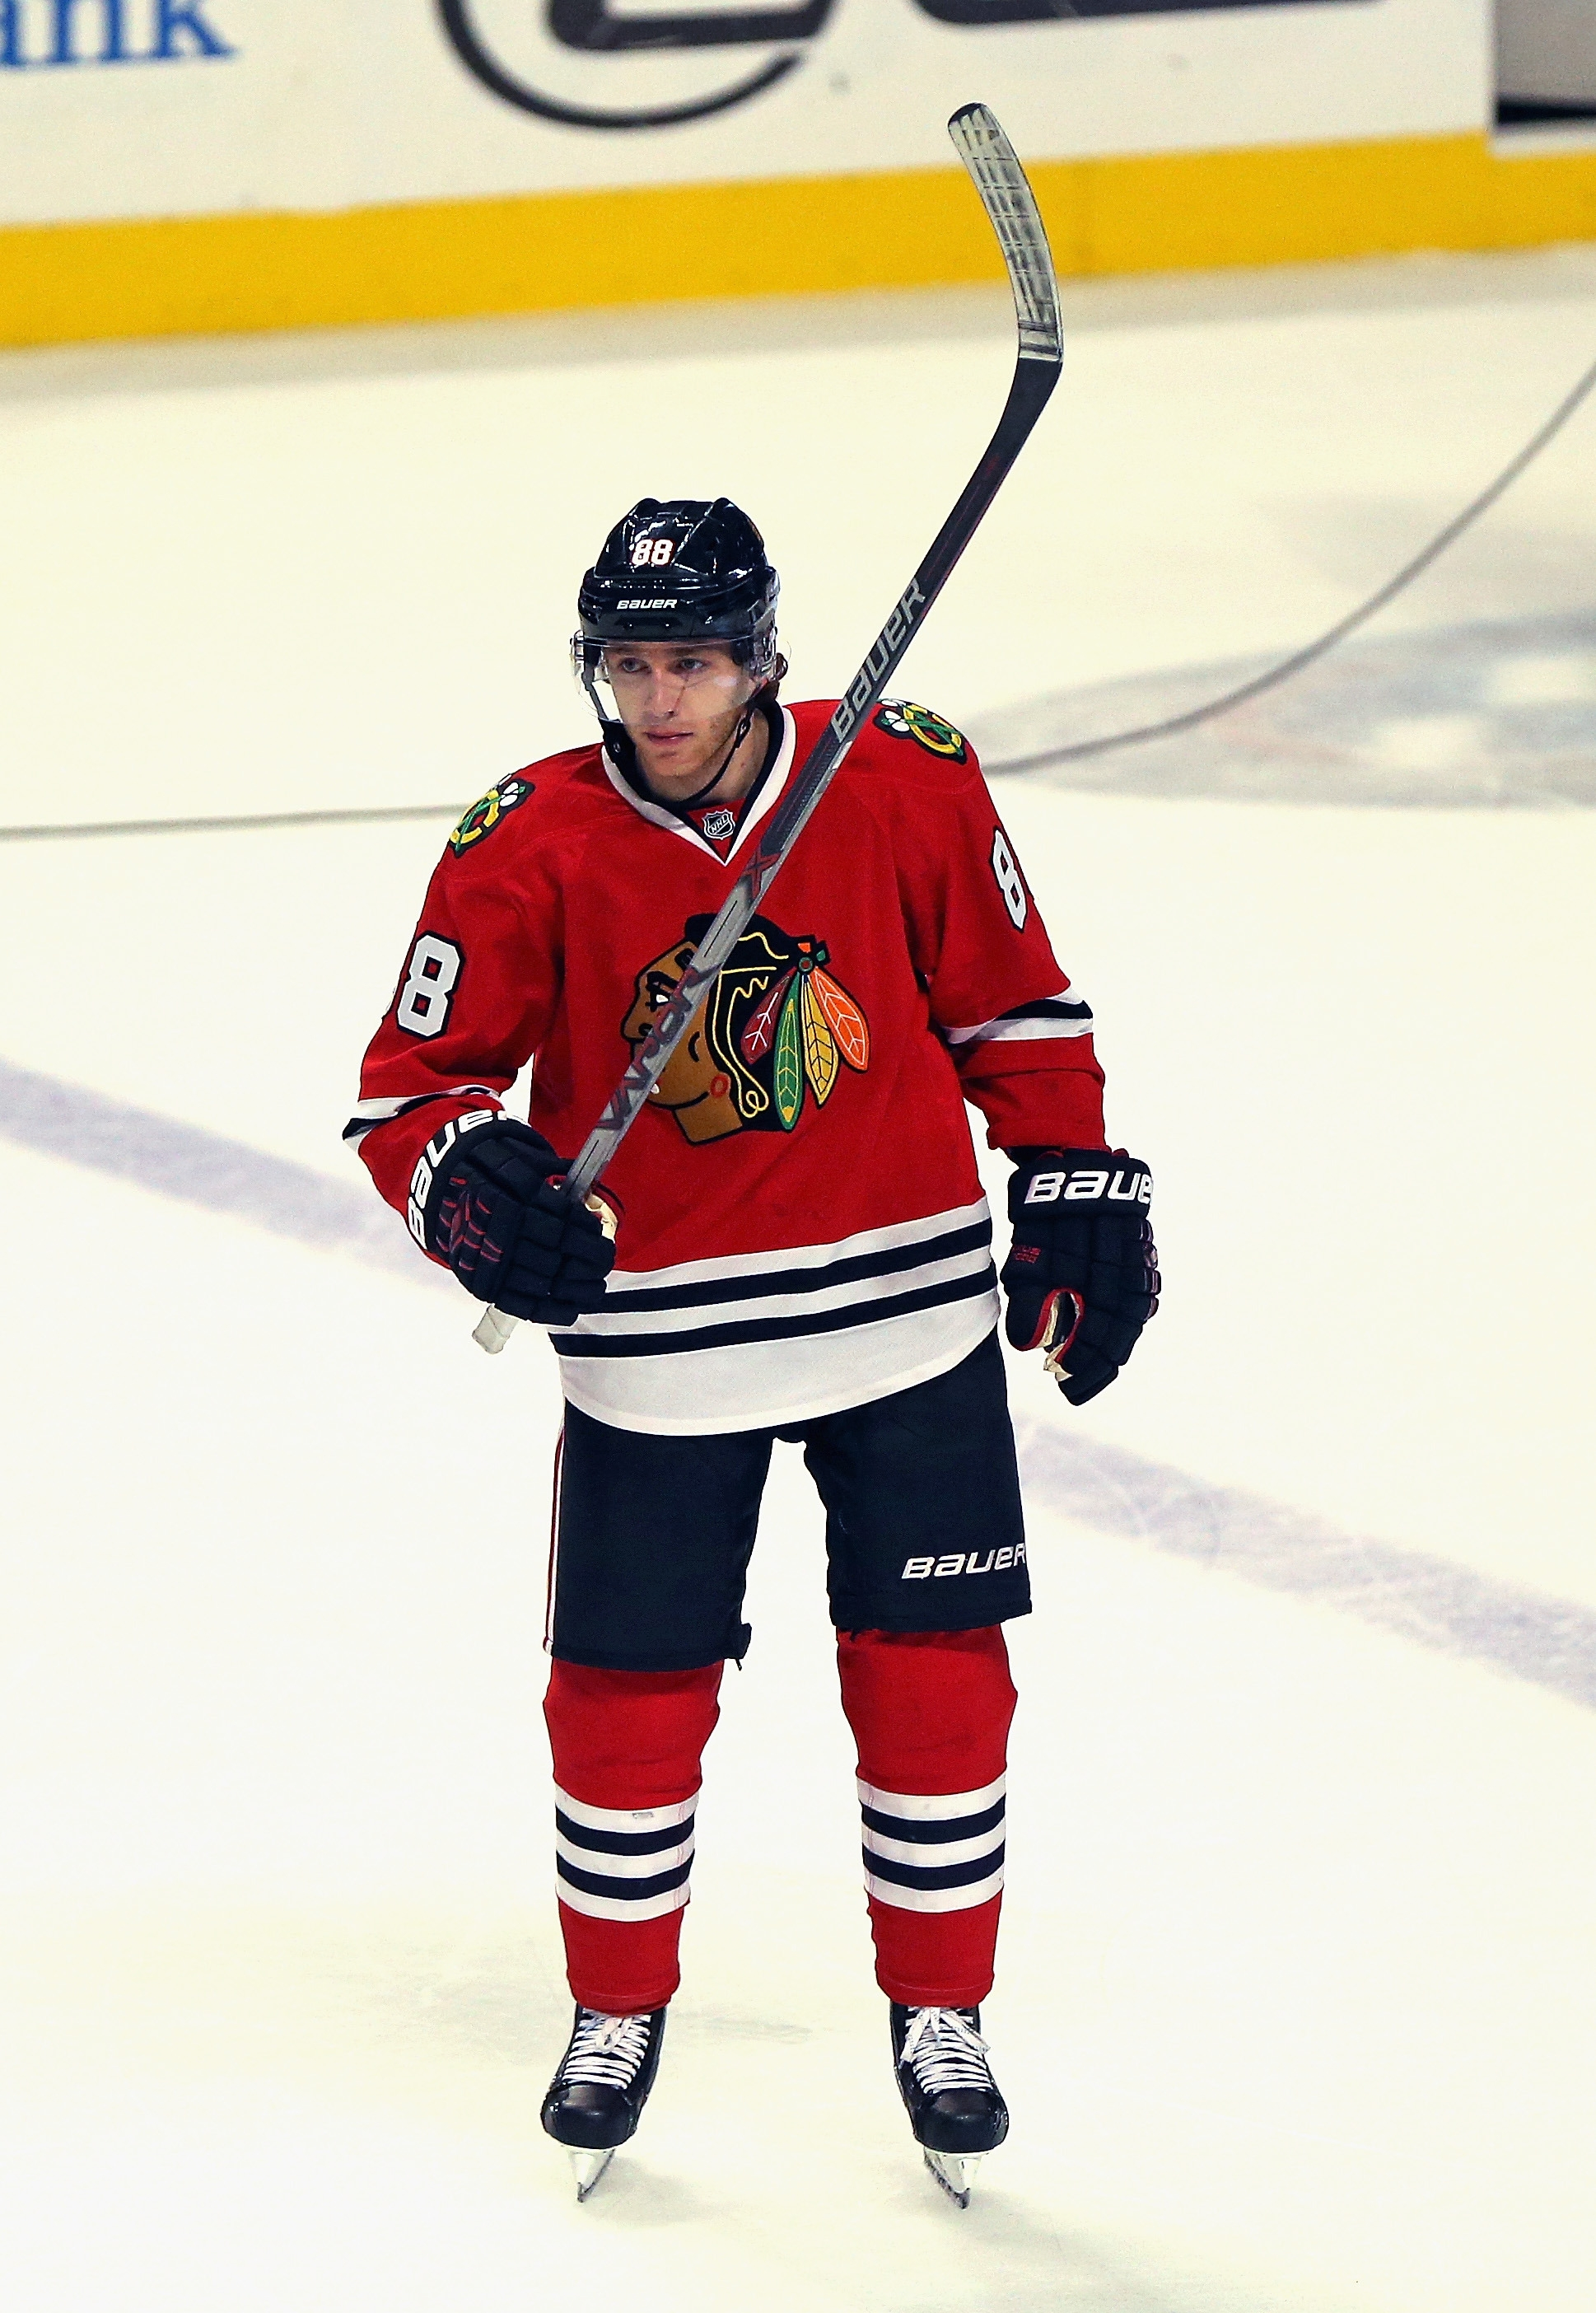 Patrick Kane had his point streak stopped at 26 games.